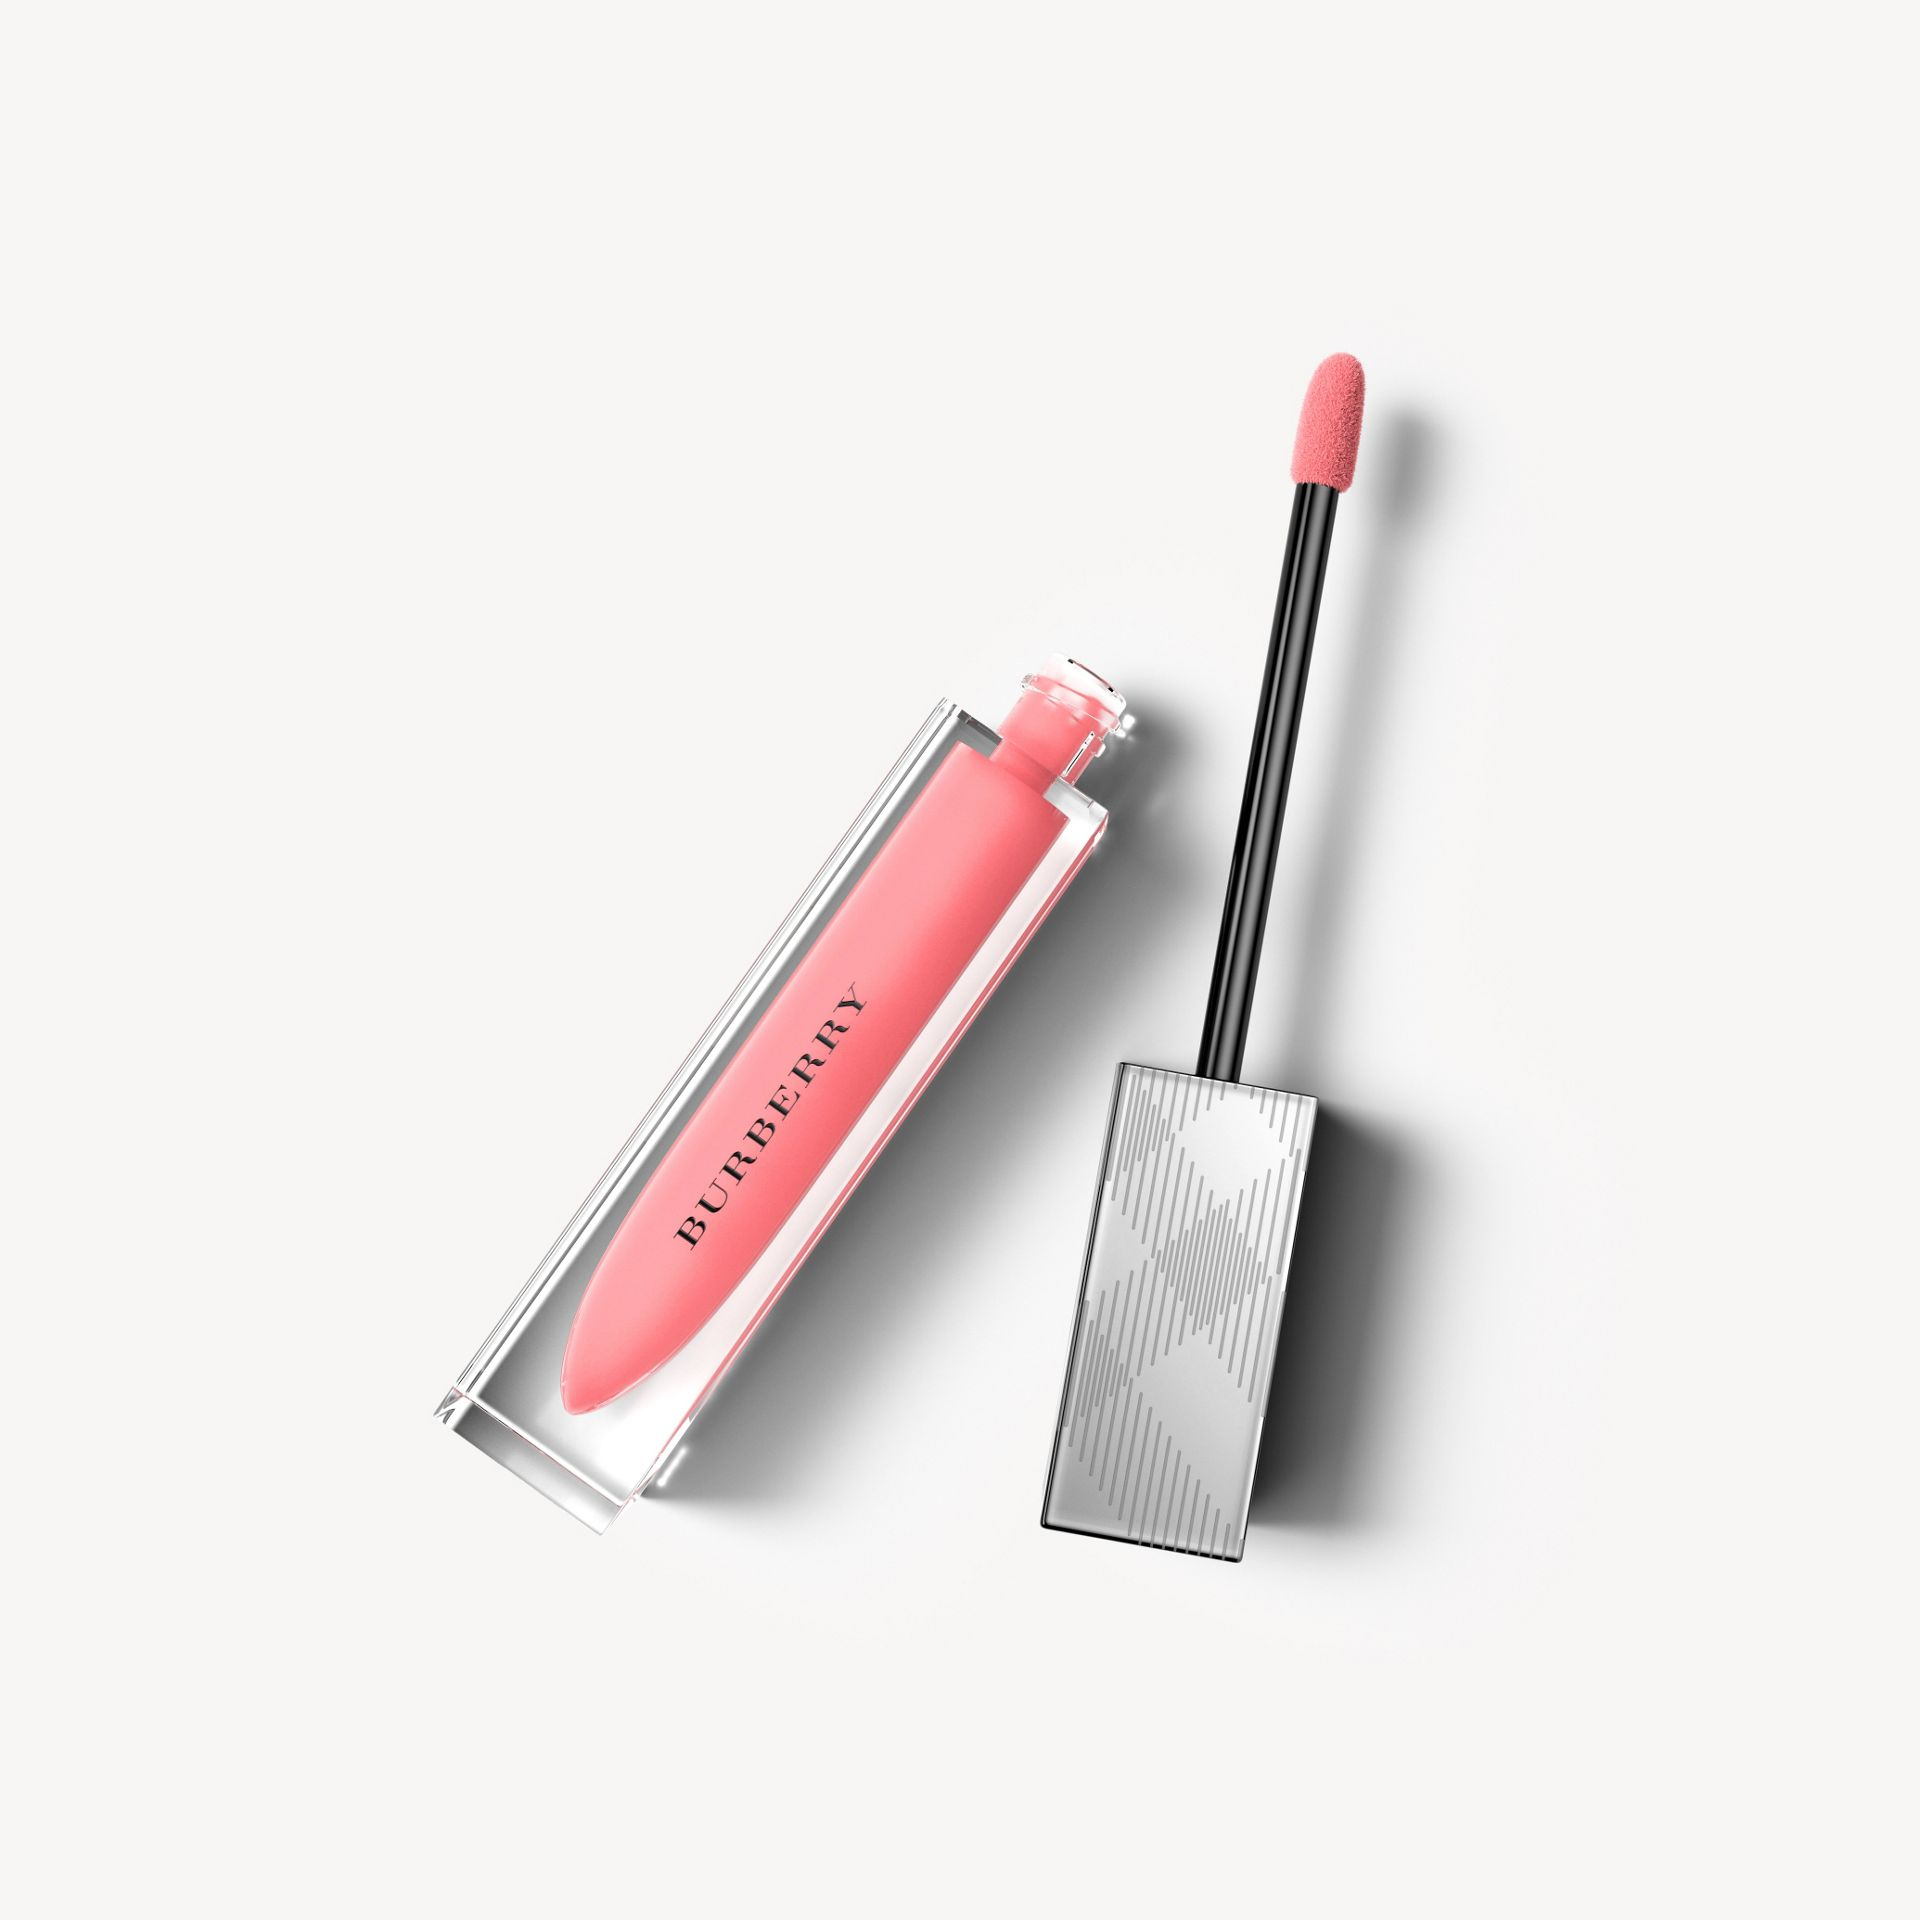 Burberry Kisses Gloss - Apricot Pink No.69 - Donna | Burberry - immagine della galleria 1